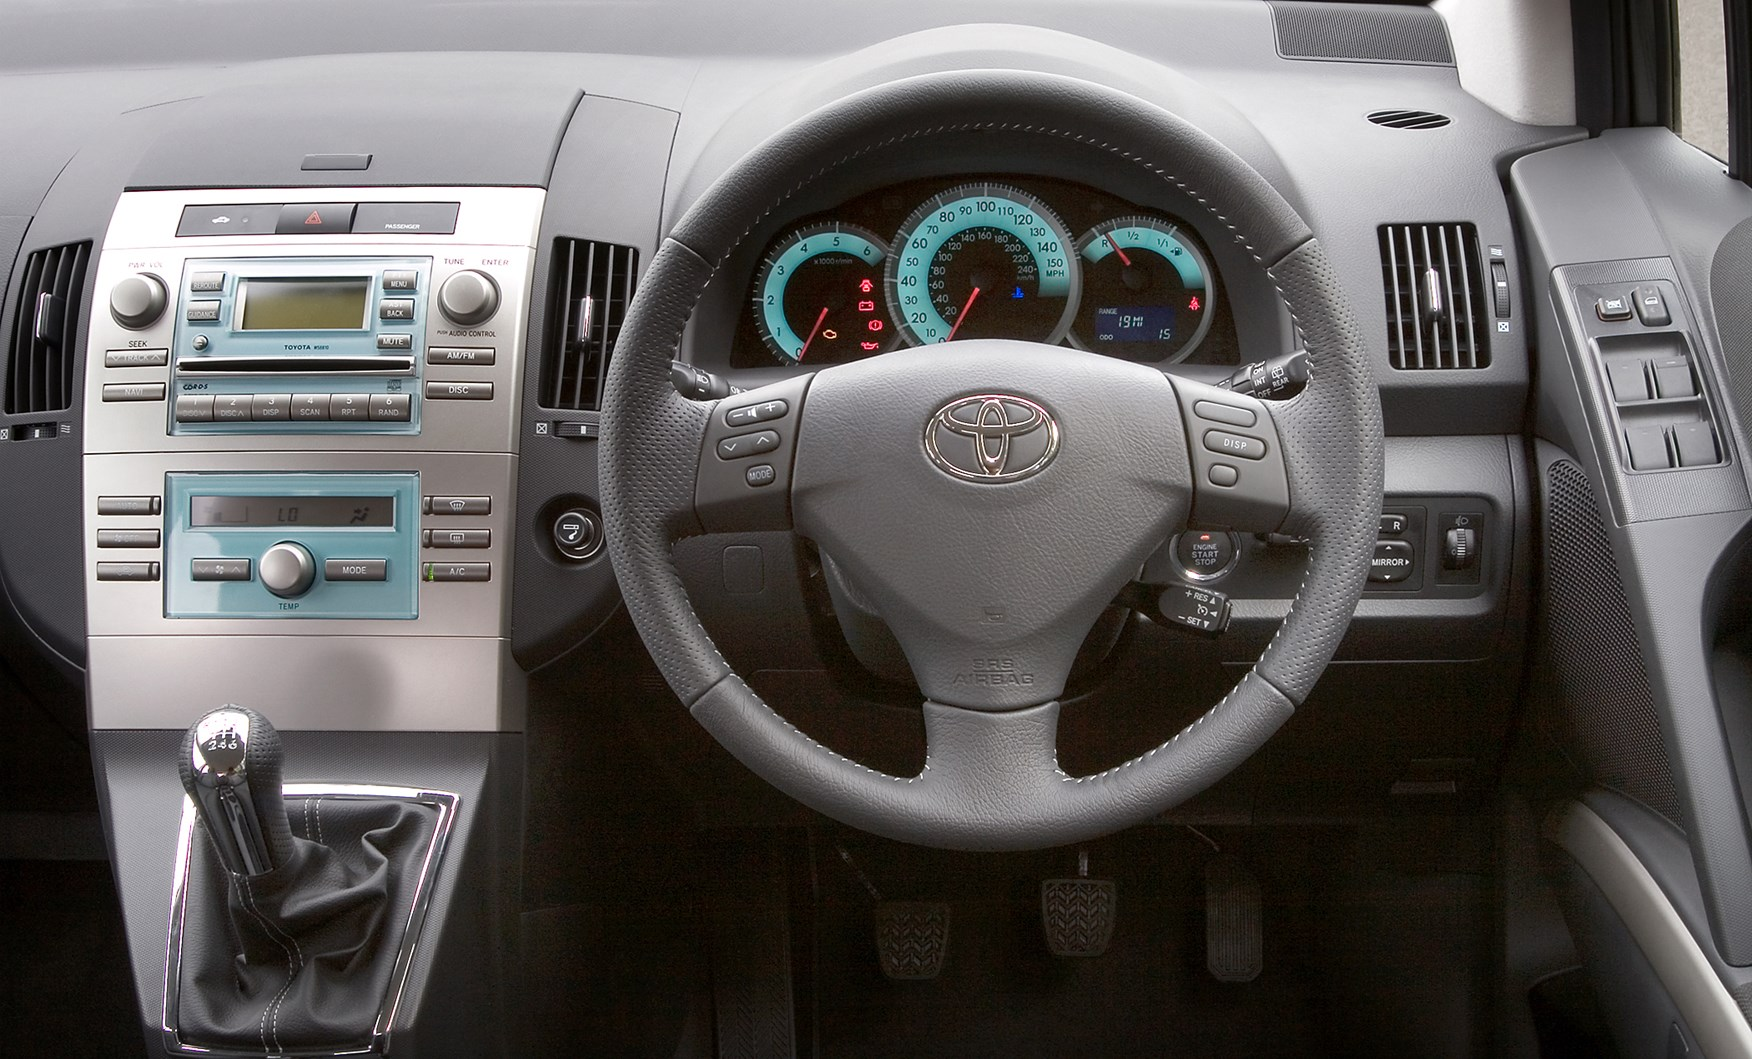 toyota corolla verso review (2004 - 2009) | parkers